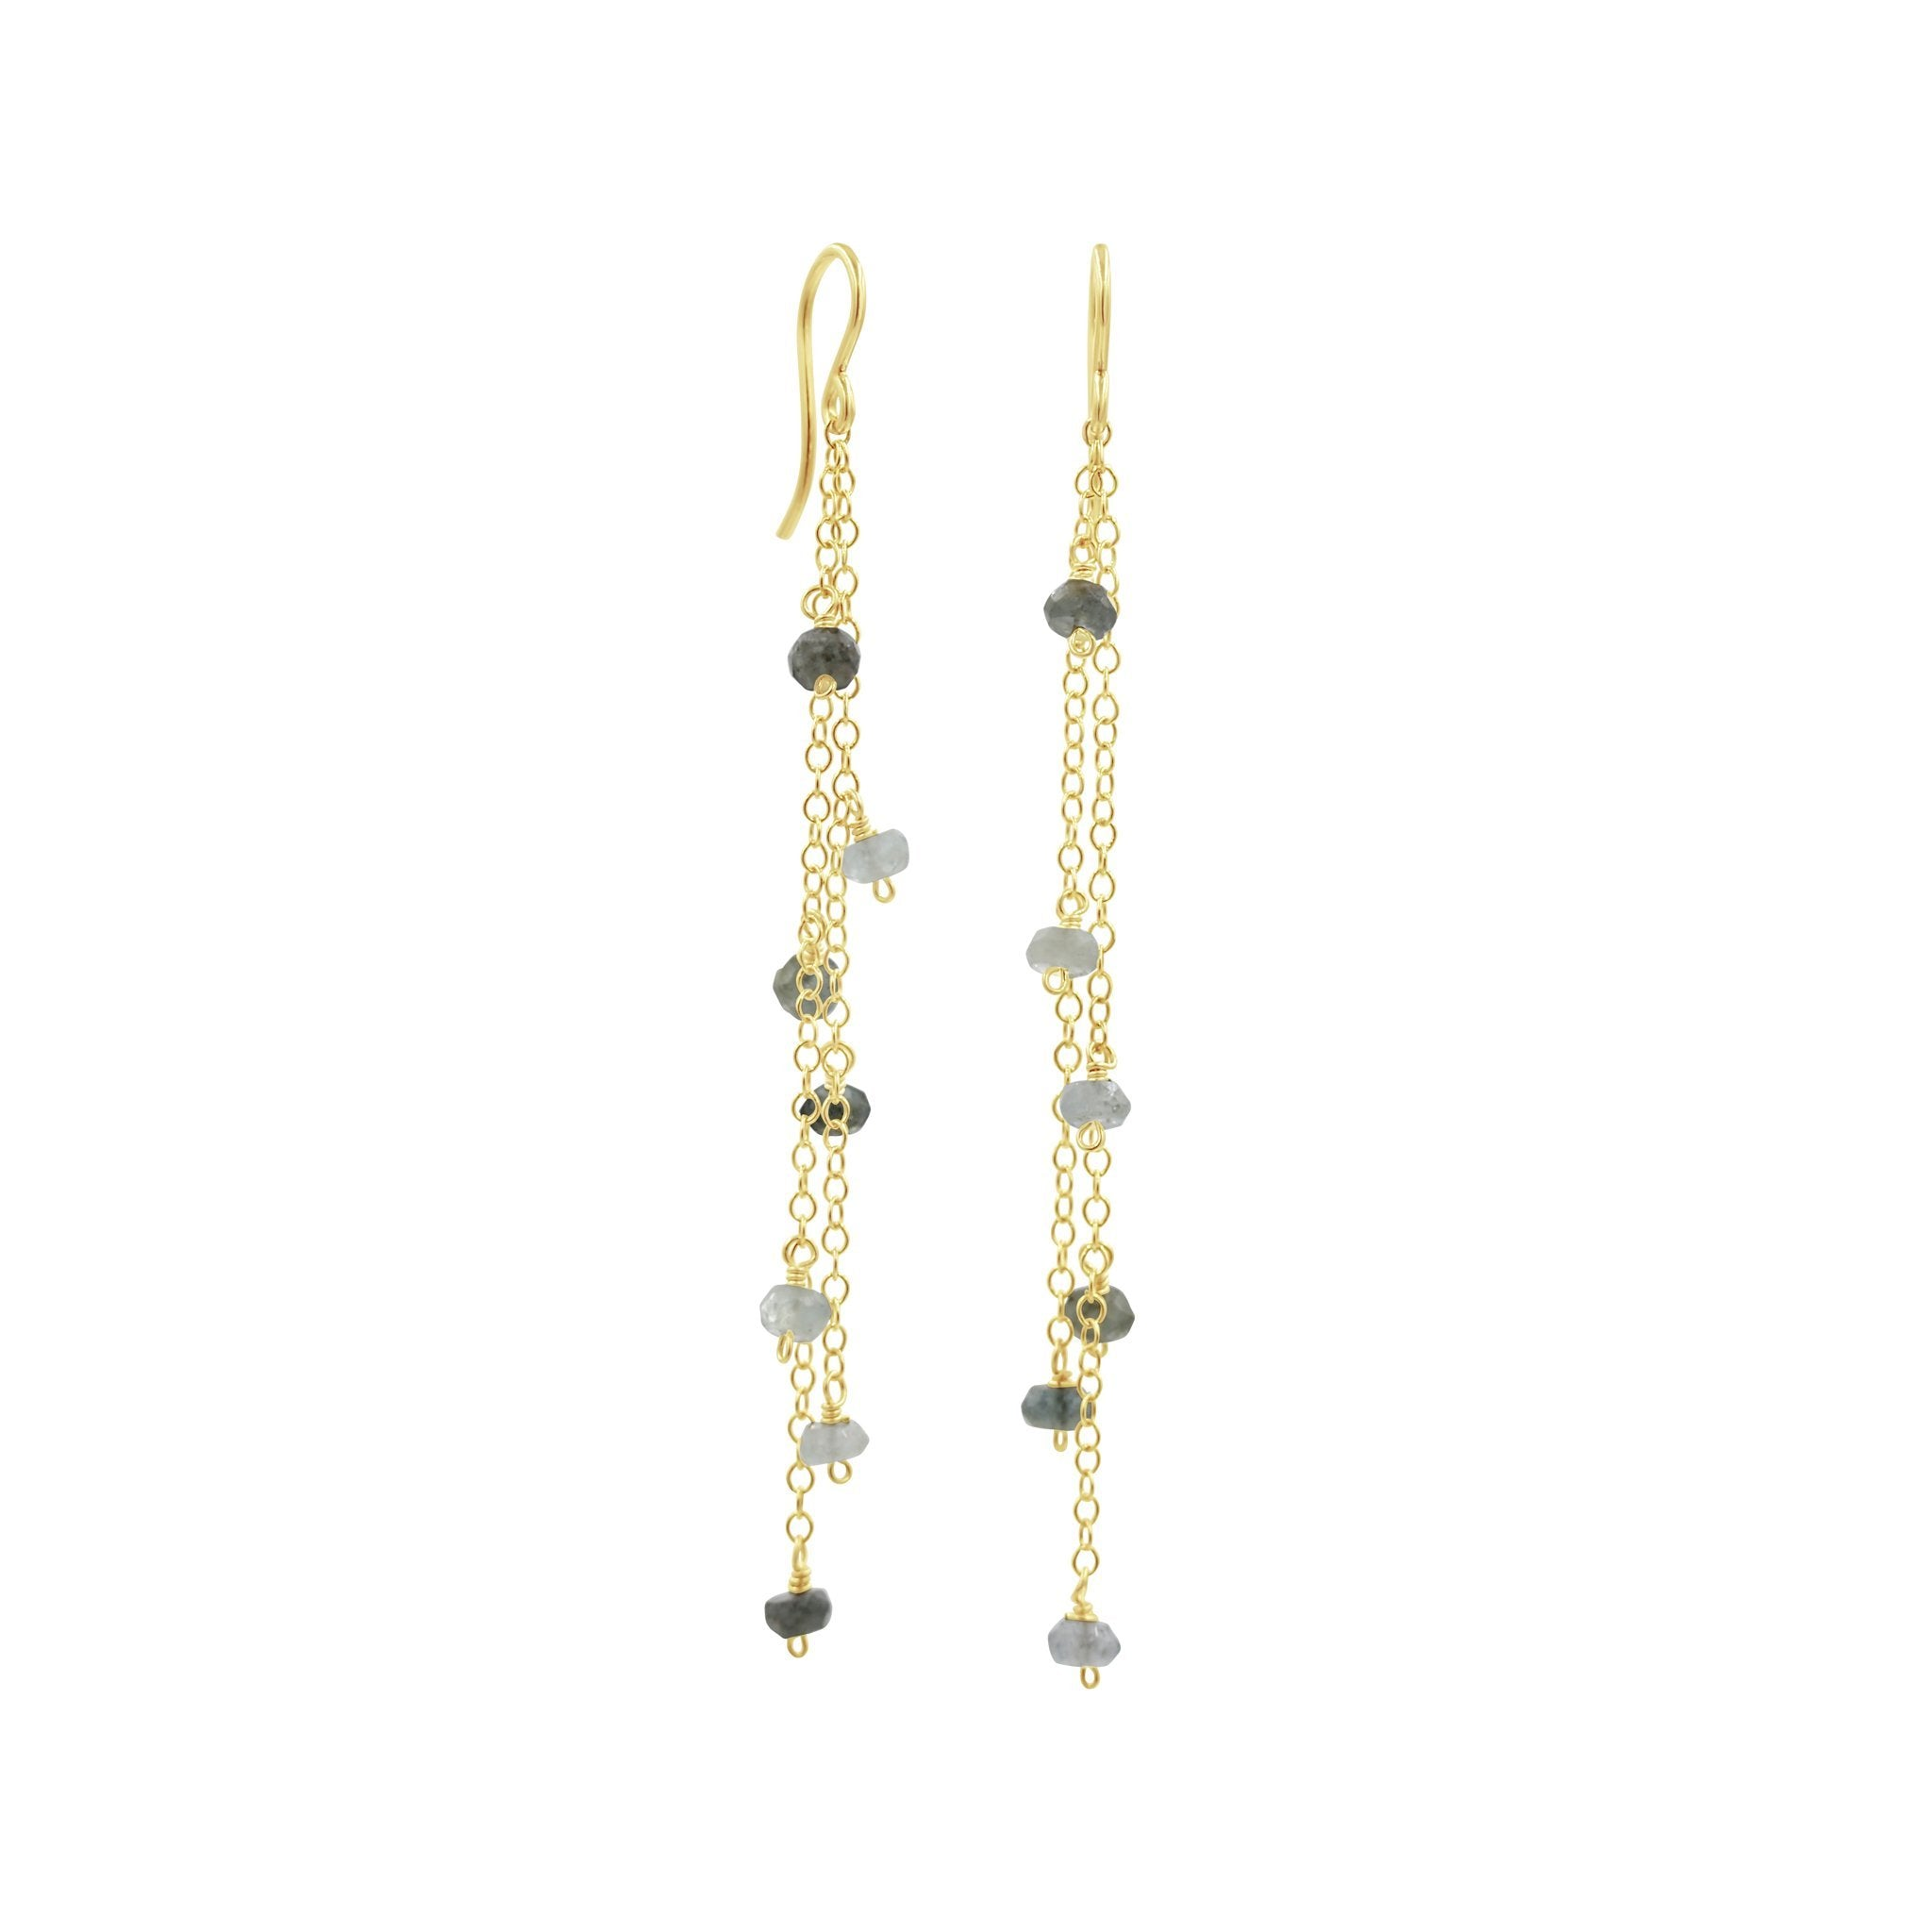 Dangle Gold Aquamarine Earrings - Sati Gems Hawaii